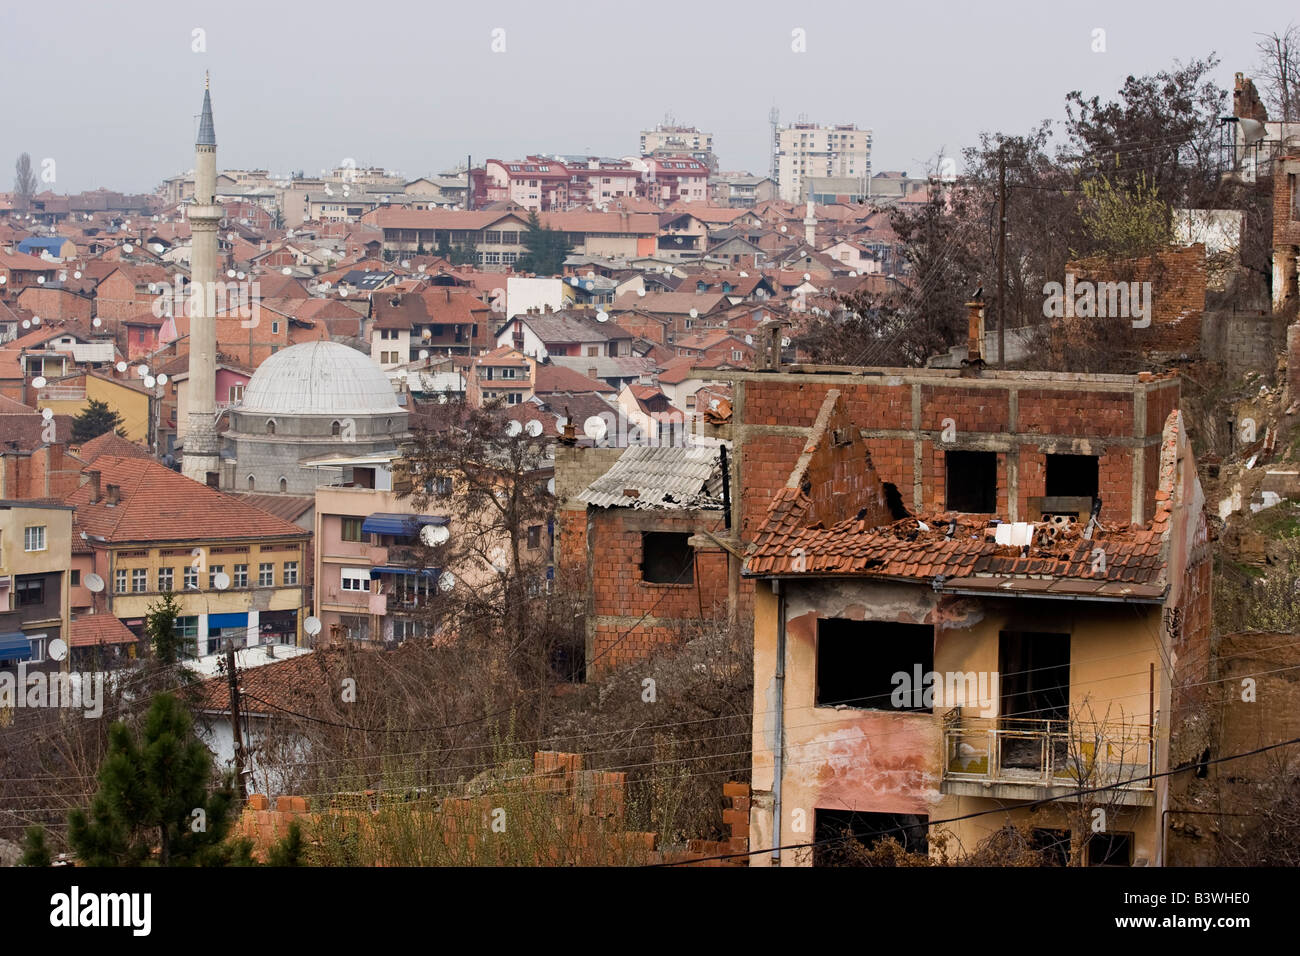 A burned out in 2004 riots shell of Serb house with a mosque in background, Prizren, Kosovo. - Stock Image